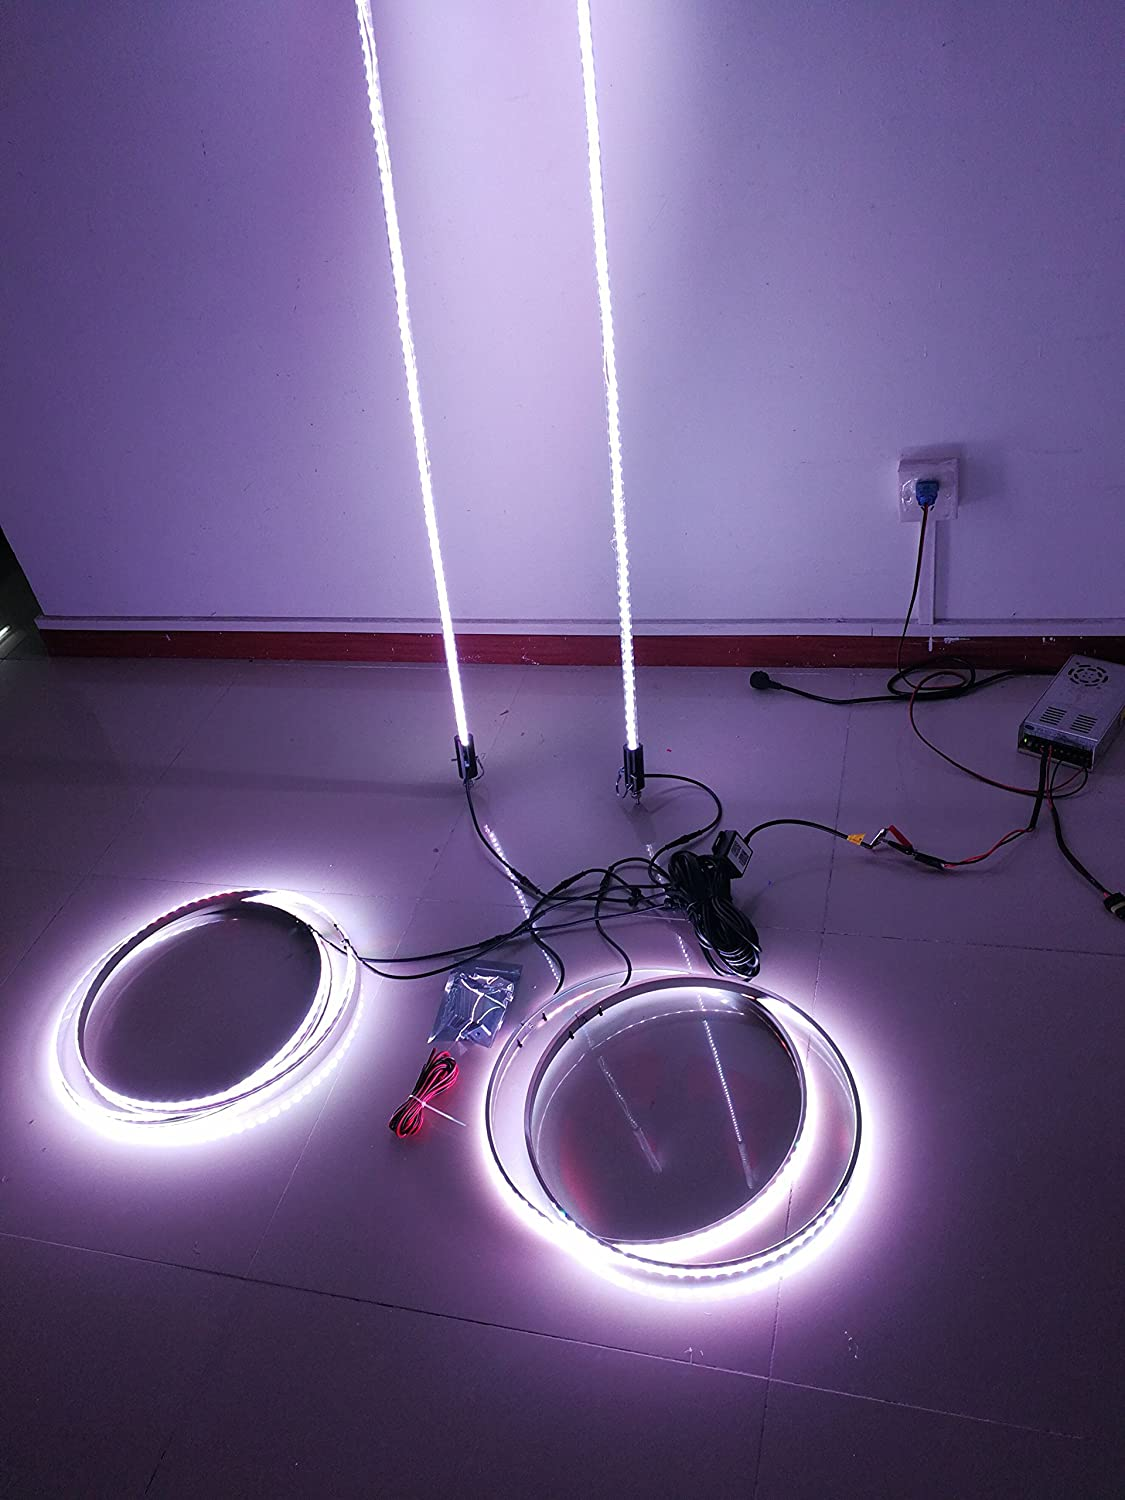 4 of 15.5 Synced Bluetooth Multiple Colors LED Whip Lights 2 of 6ft +LED Illuminated Wheel Ring Rim Lights